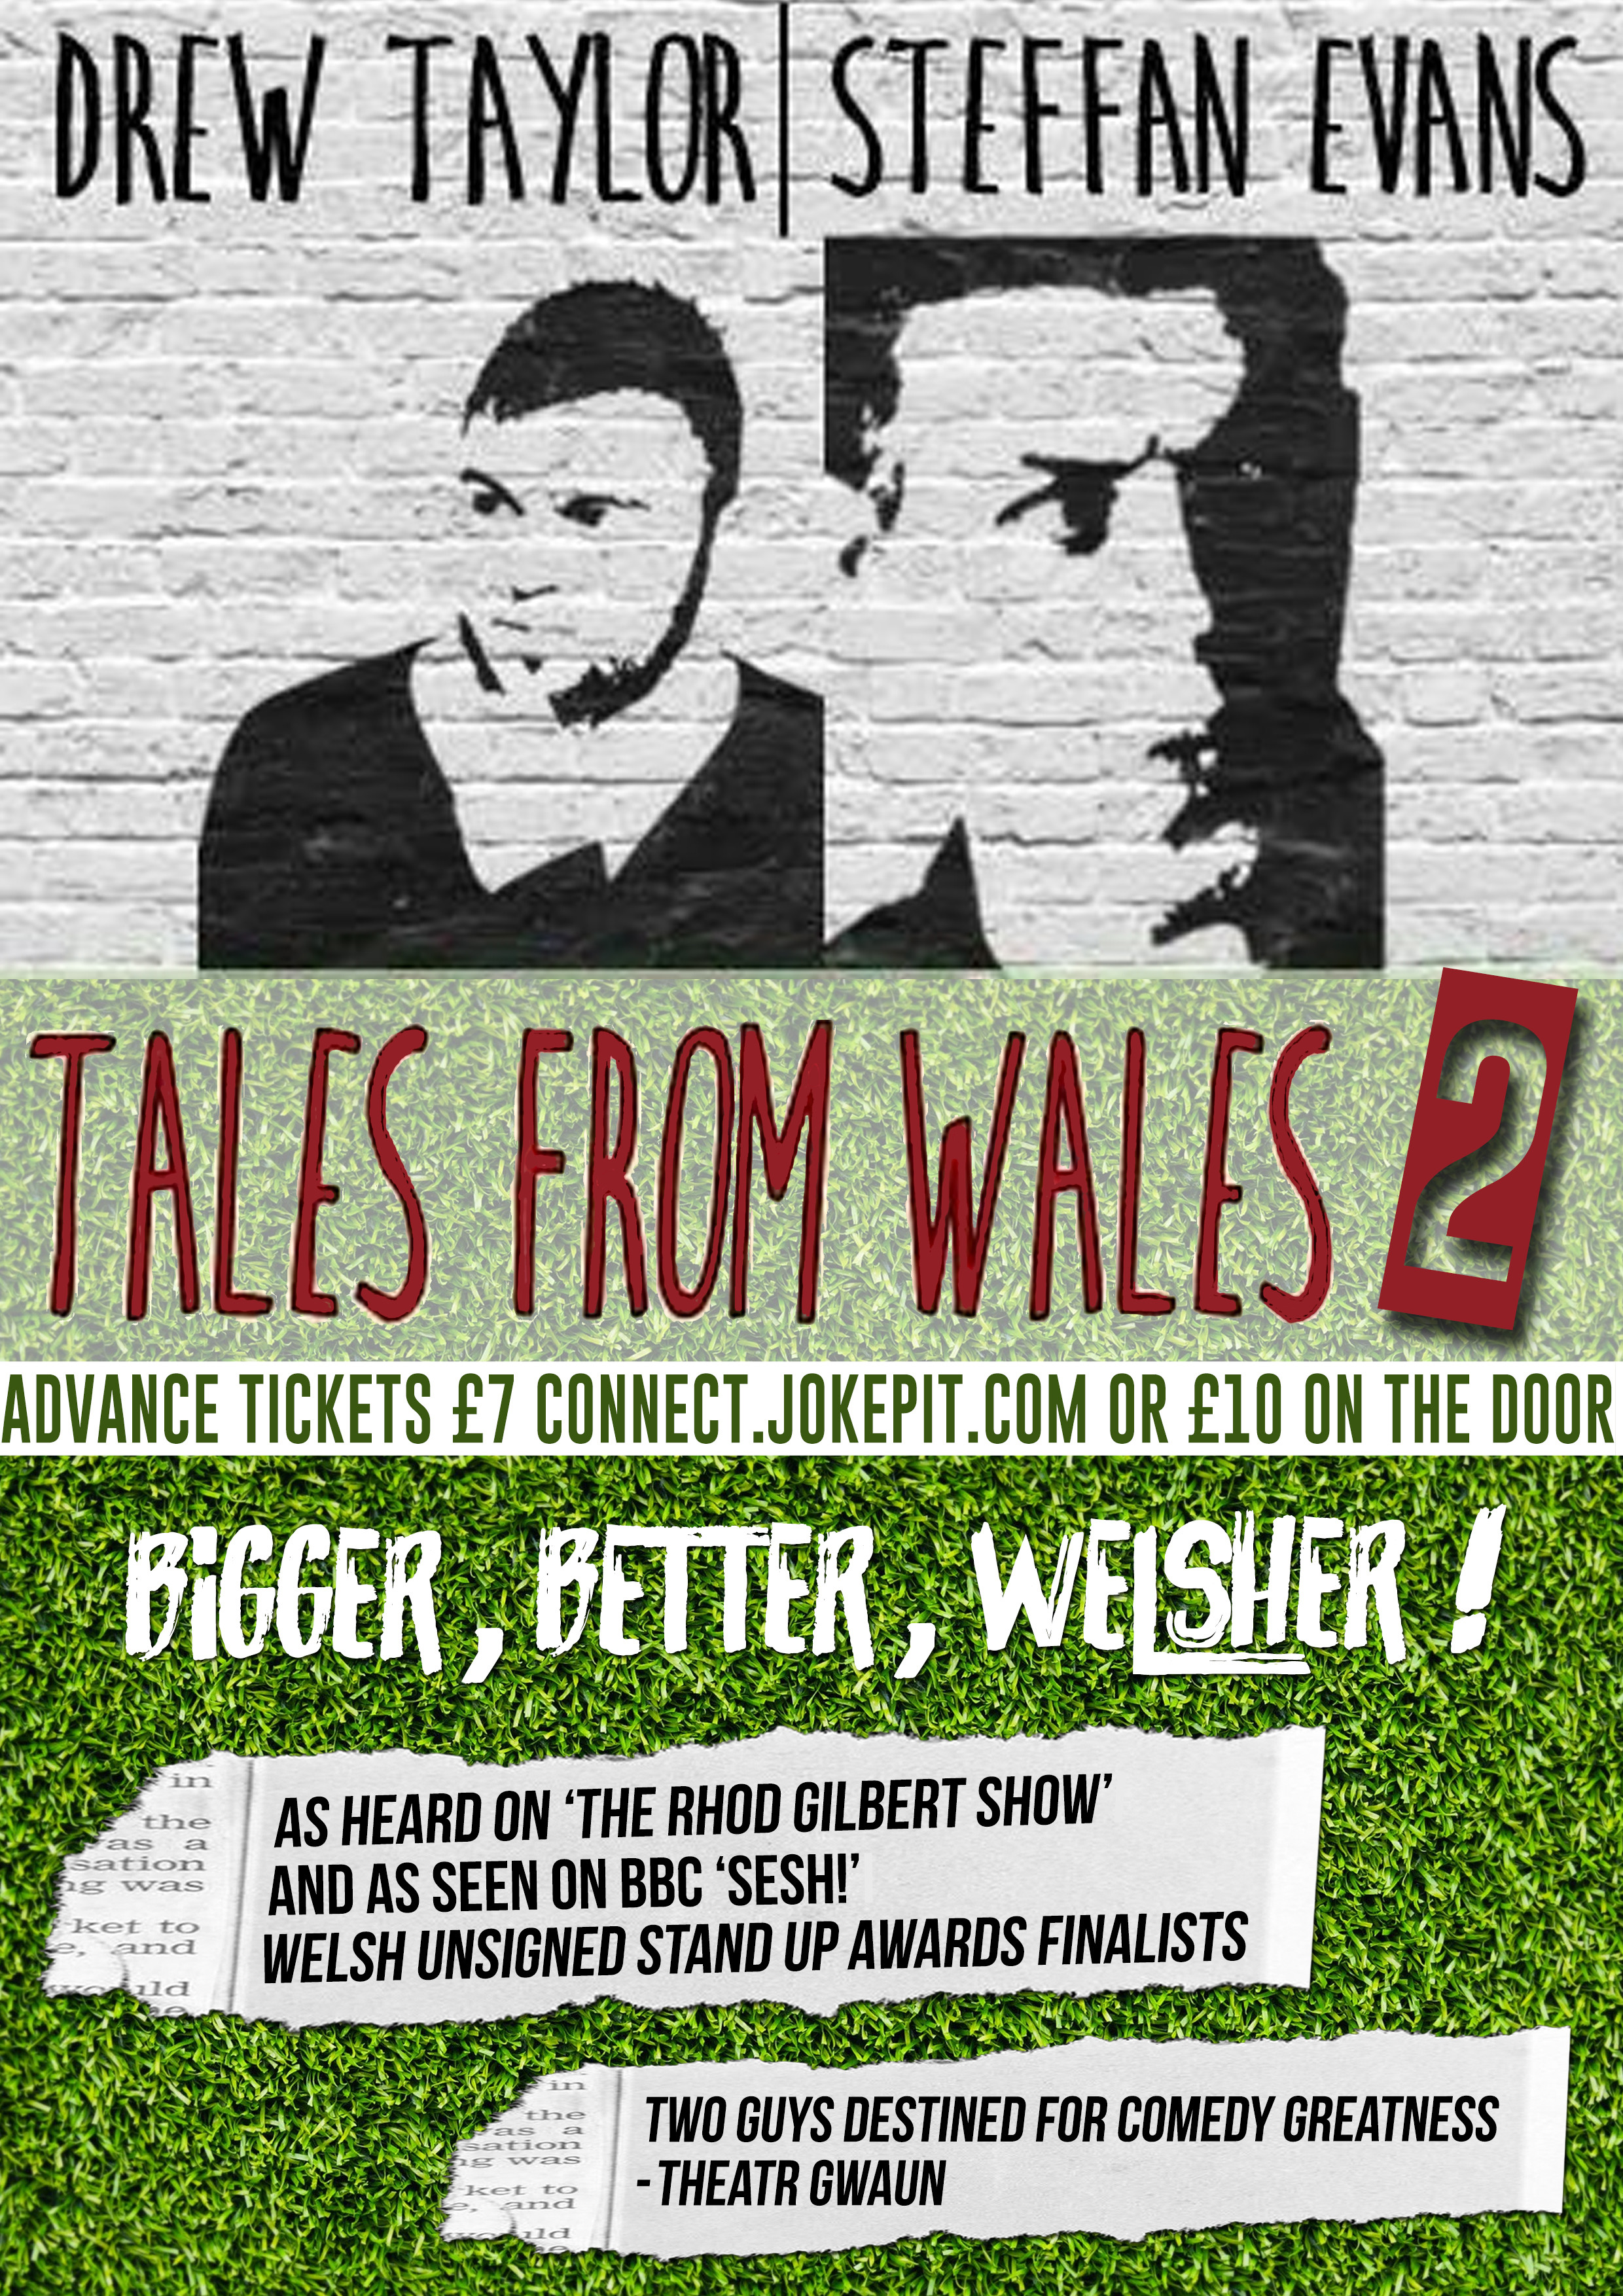 Drew tales from wales 2 festival front page